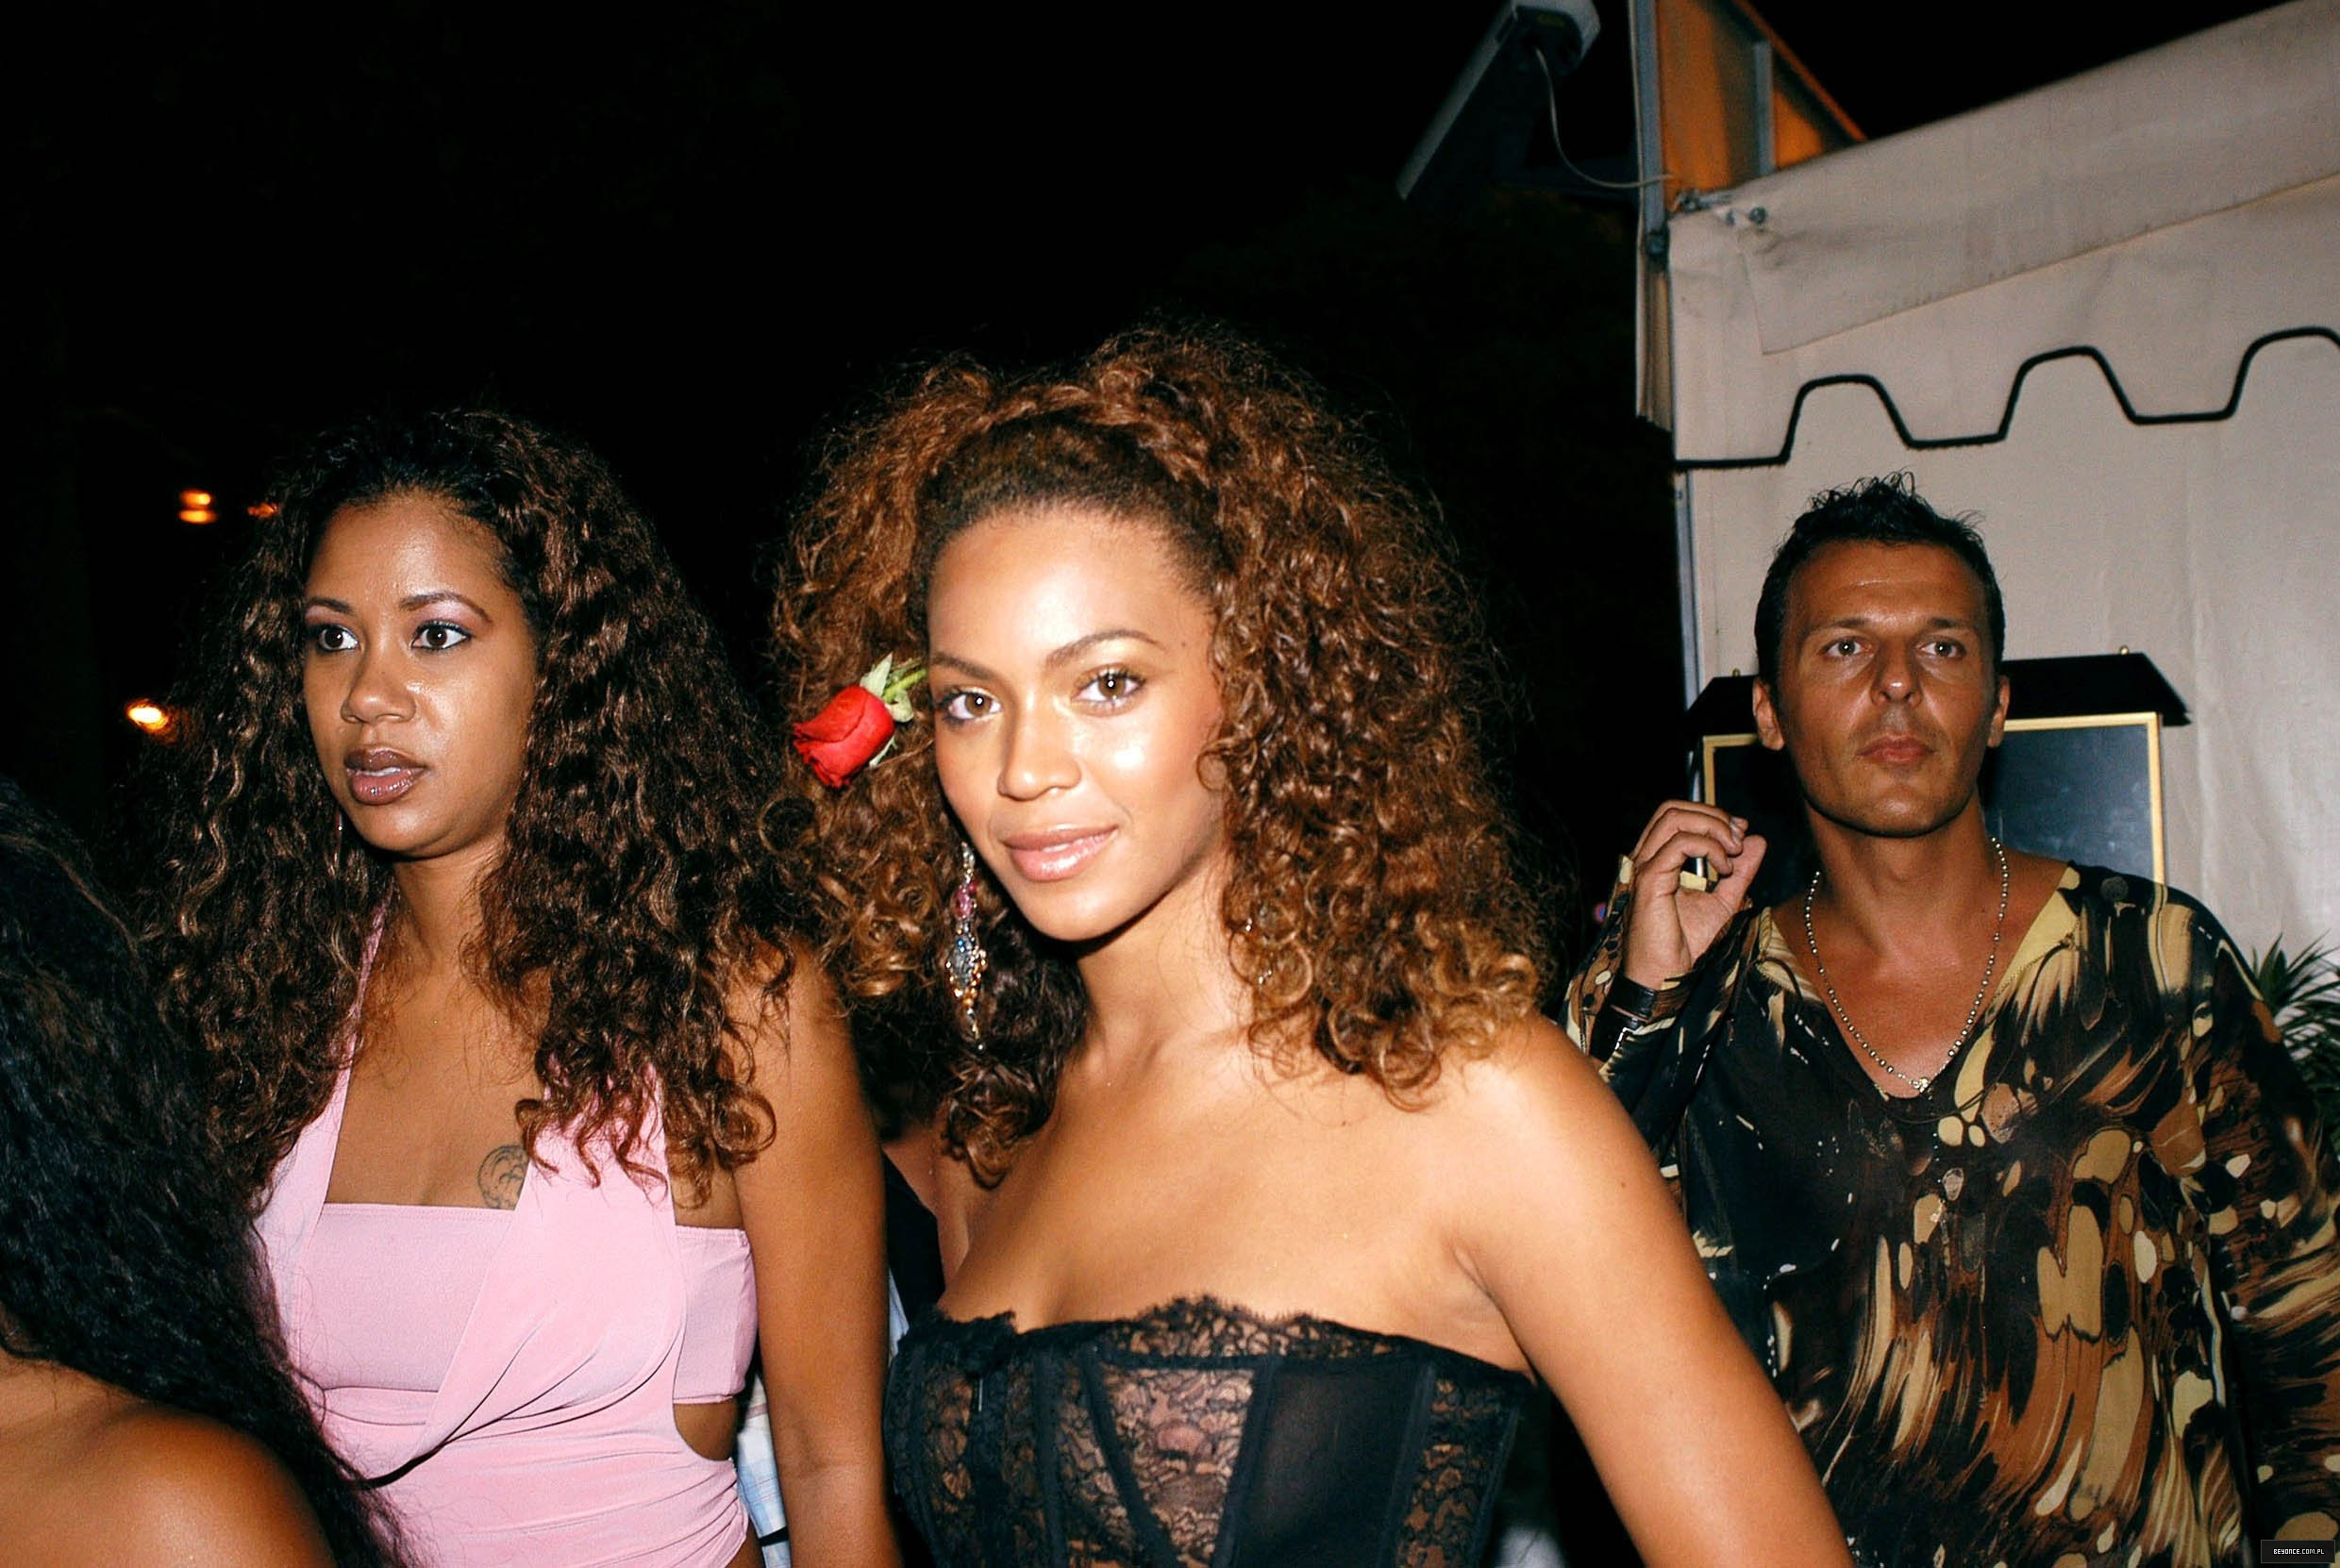 Beyonce See Through St Tropez 3 TheFappening.nu